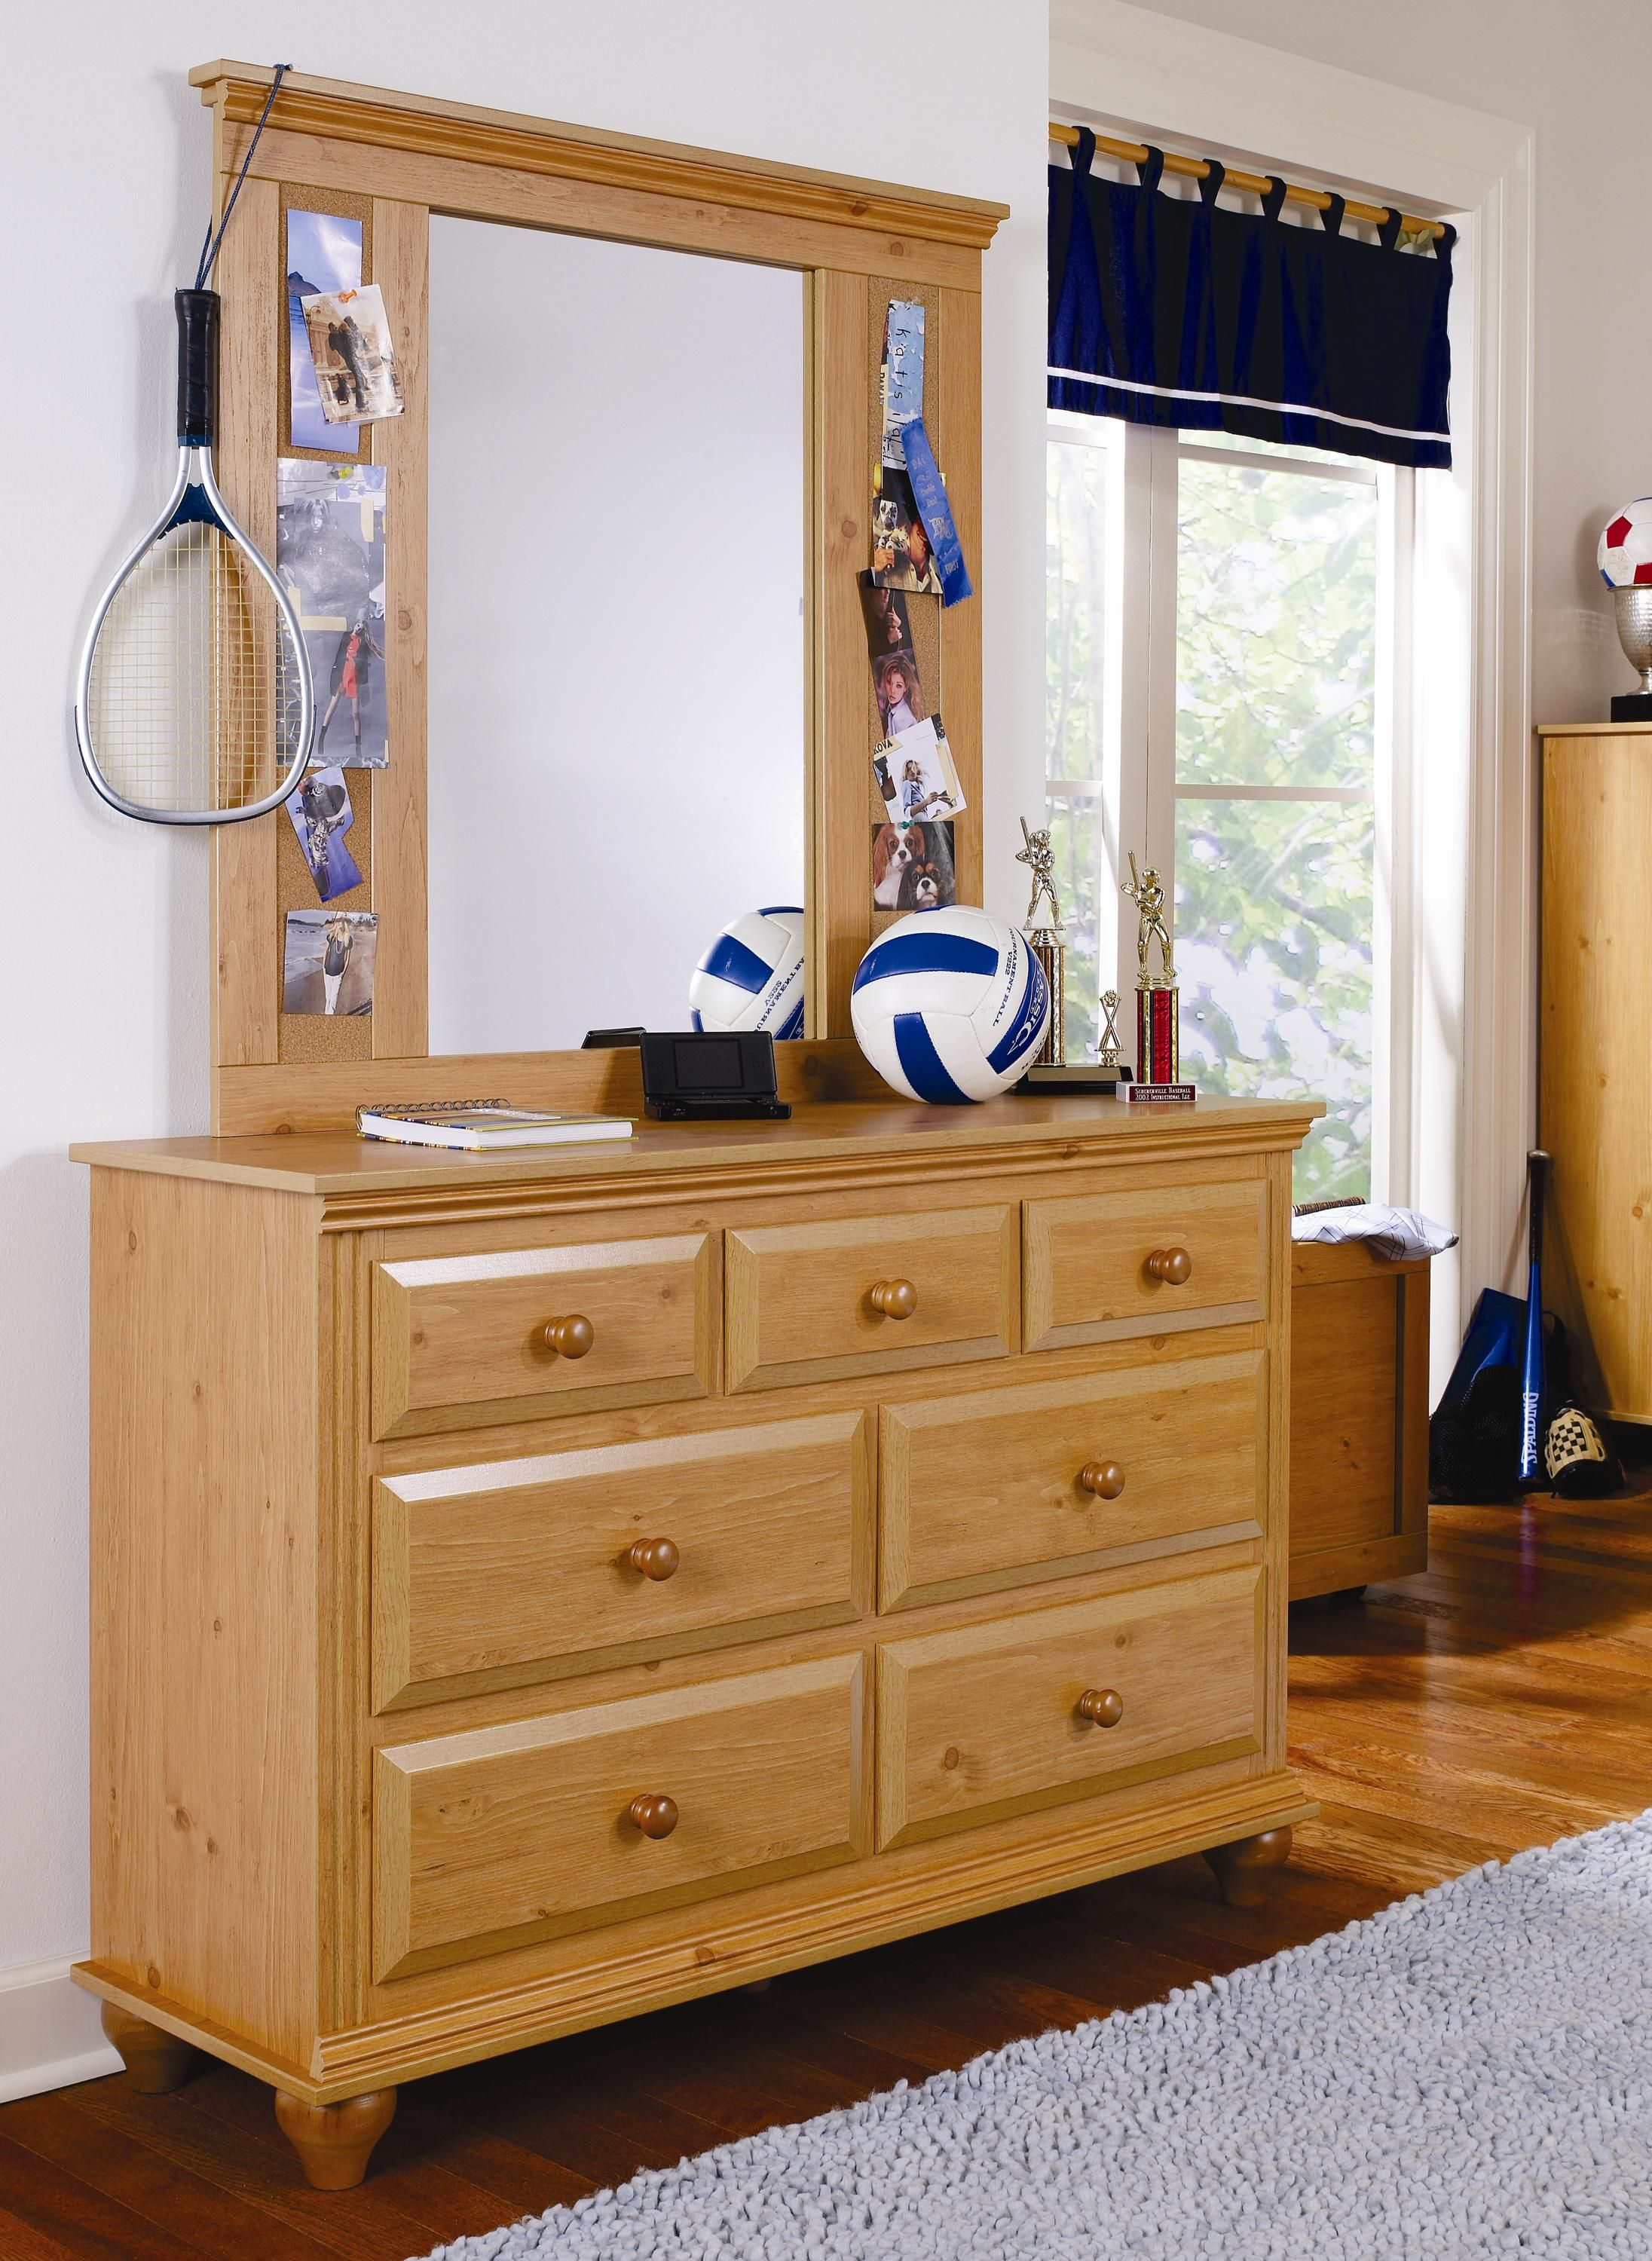 madison 7 drawer dresser with mirror combination by lang lang furniture dresser u0026 mirror